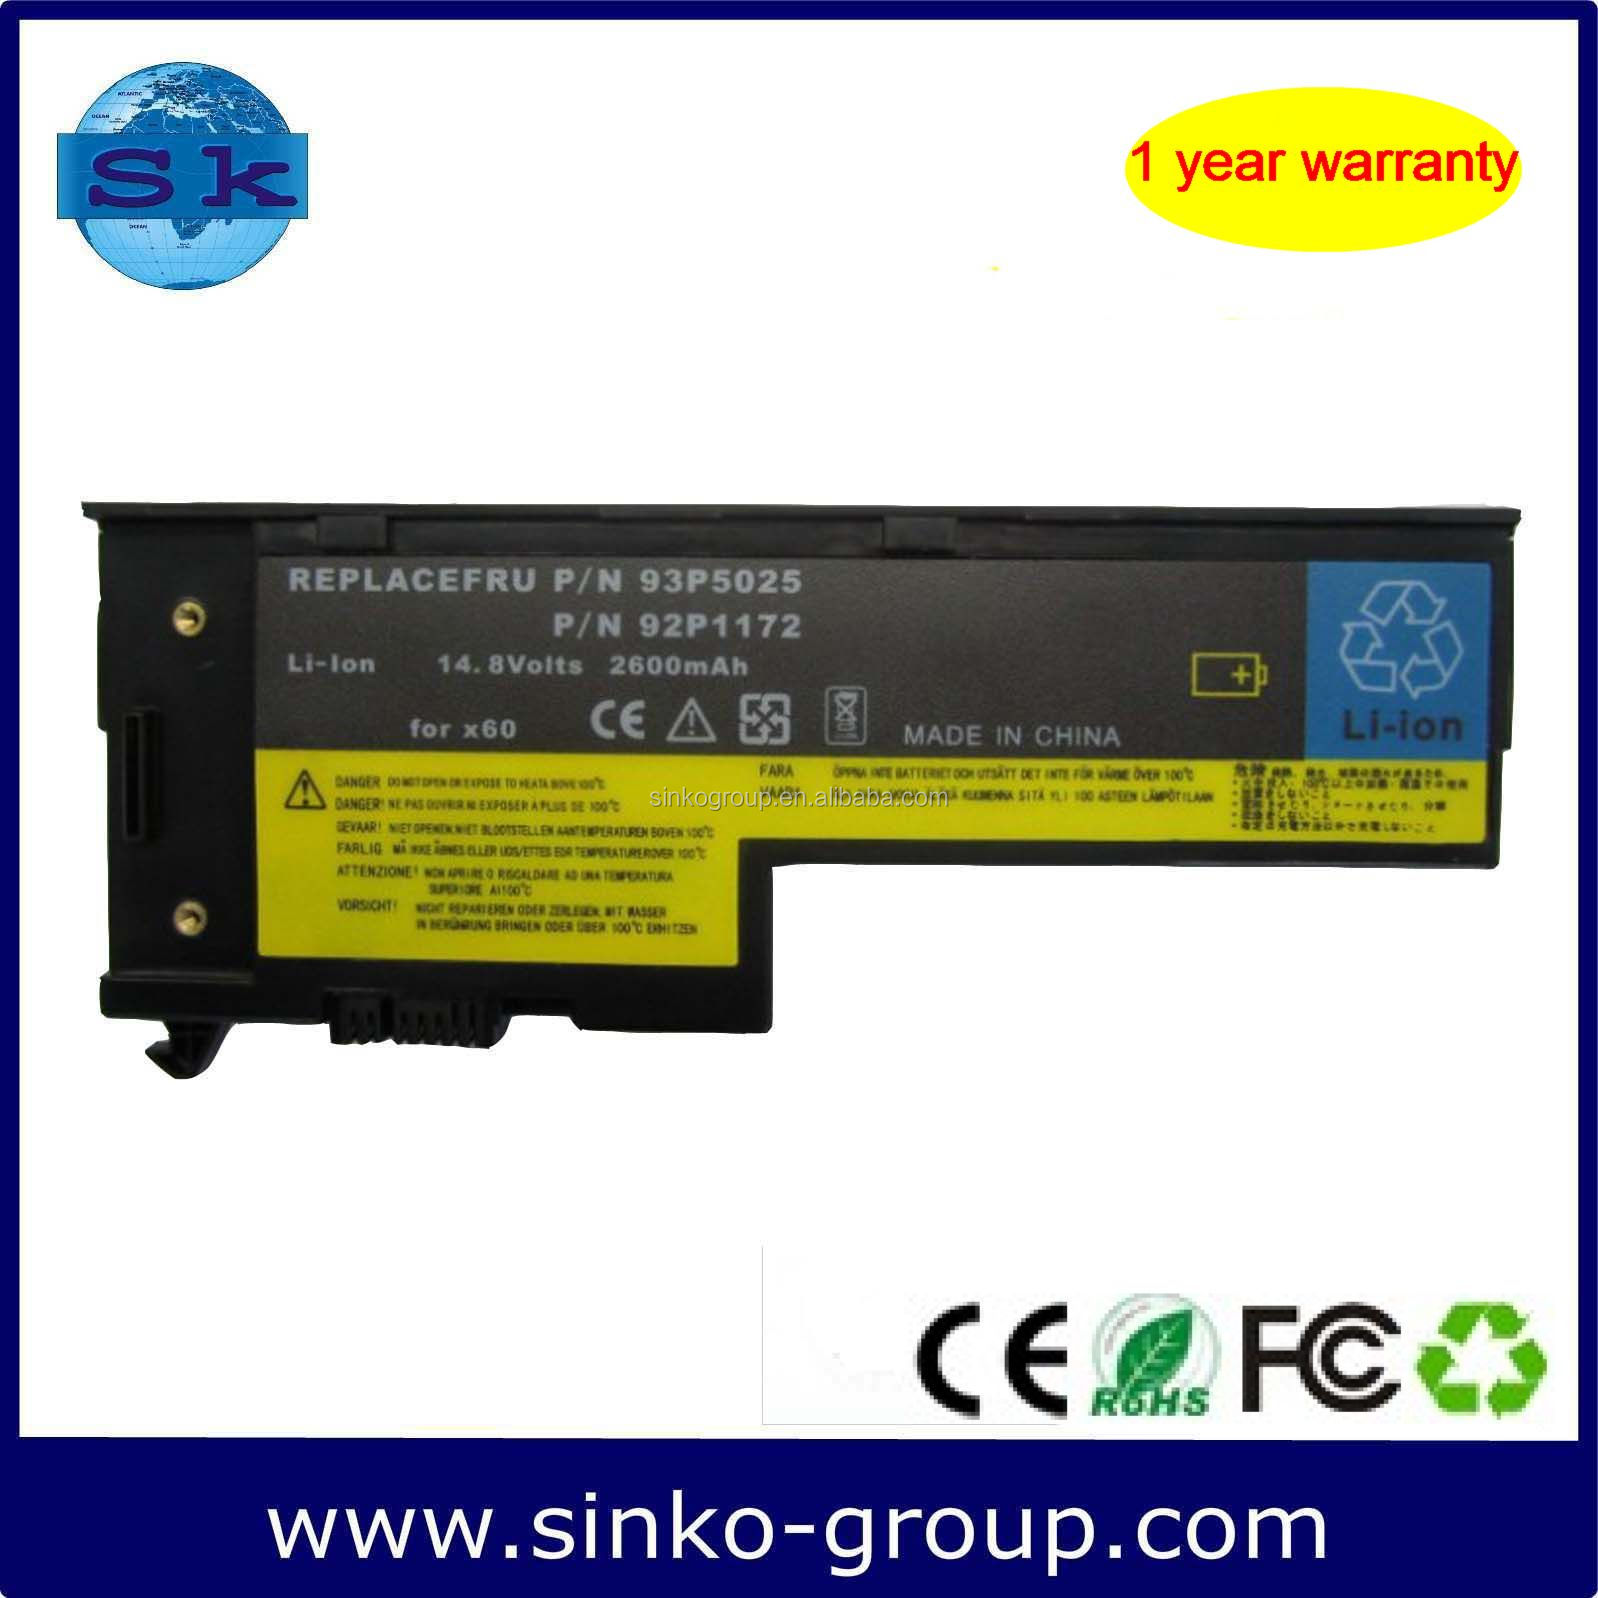 2600mAh 14.8V Battery Laptop for Lenovo IBM Thinkpad X60 X61 Series